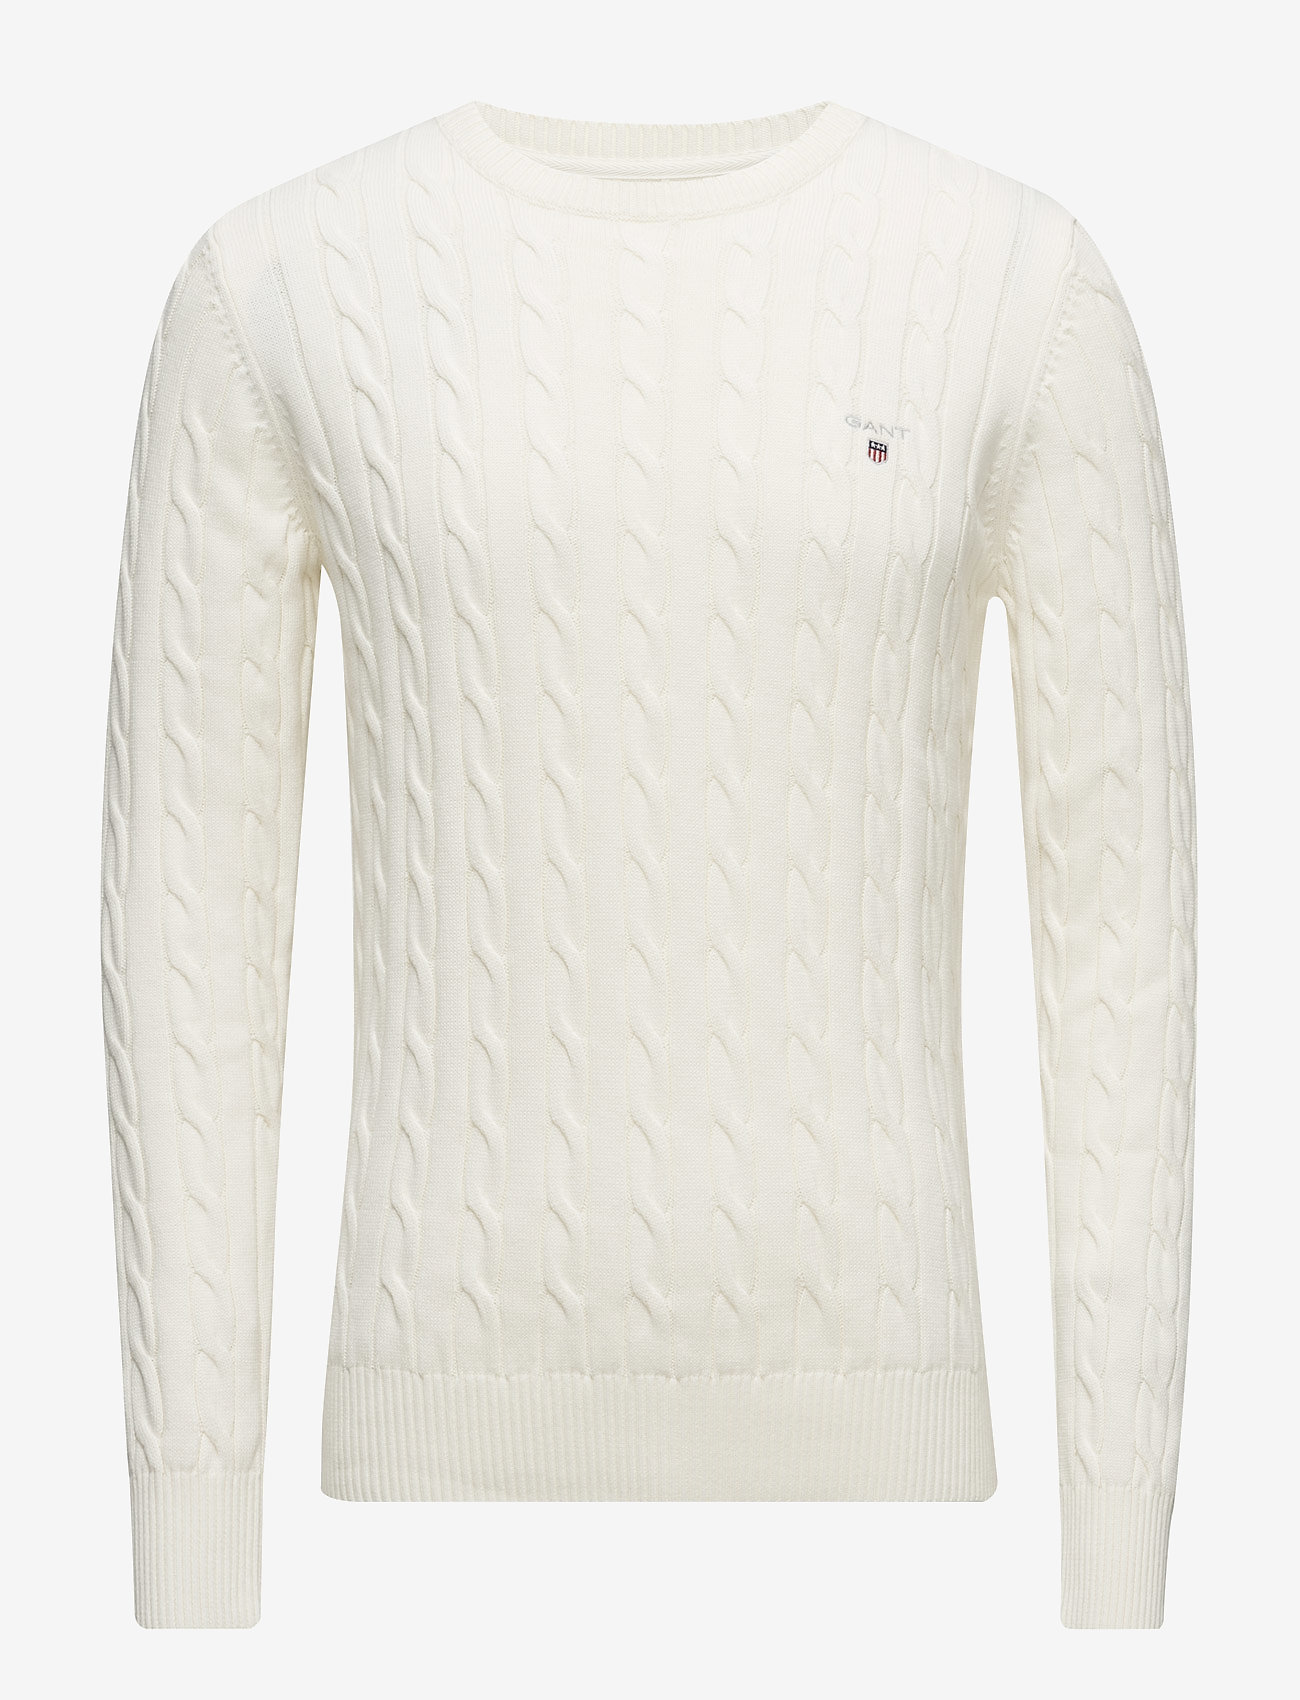 Gant - COTTON CABLE CREW - basic knitwear - cream